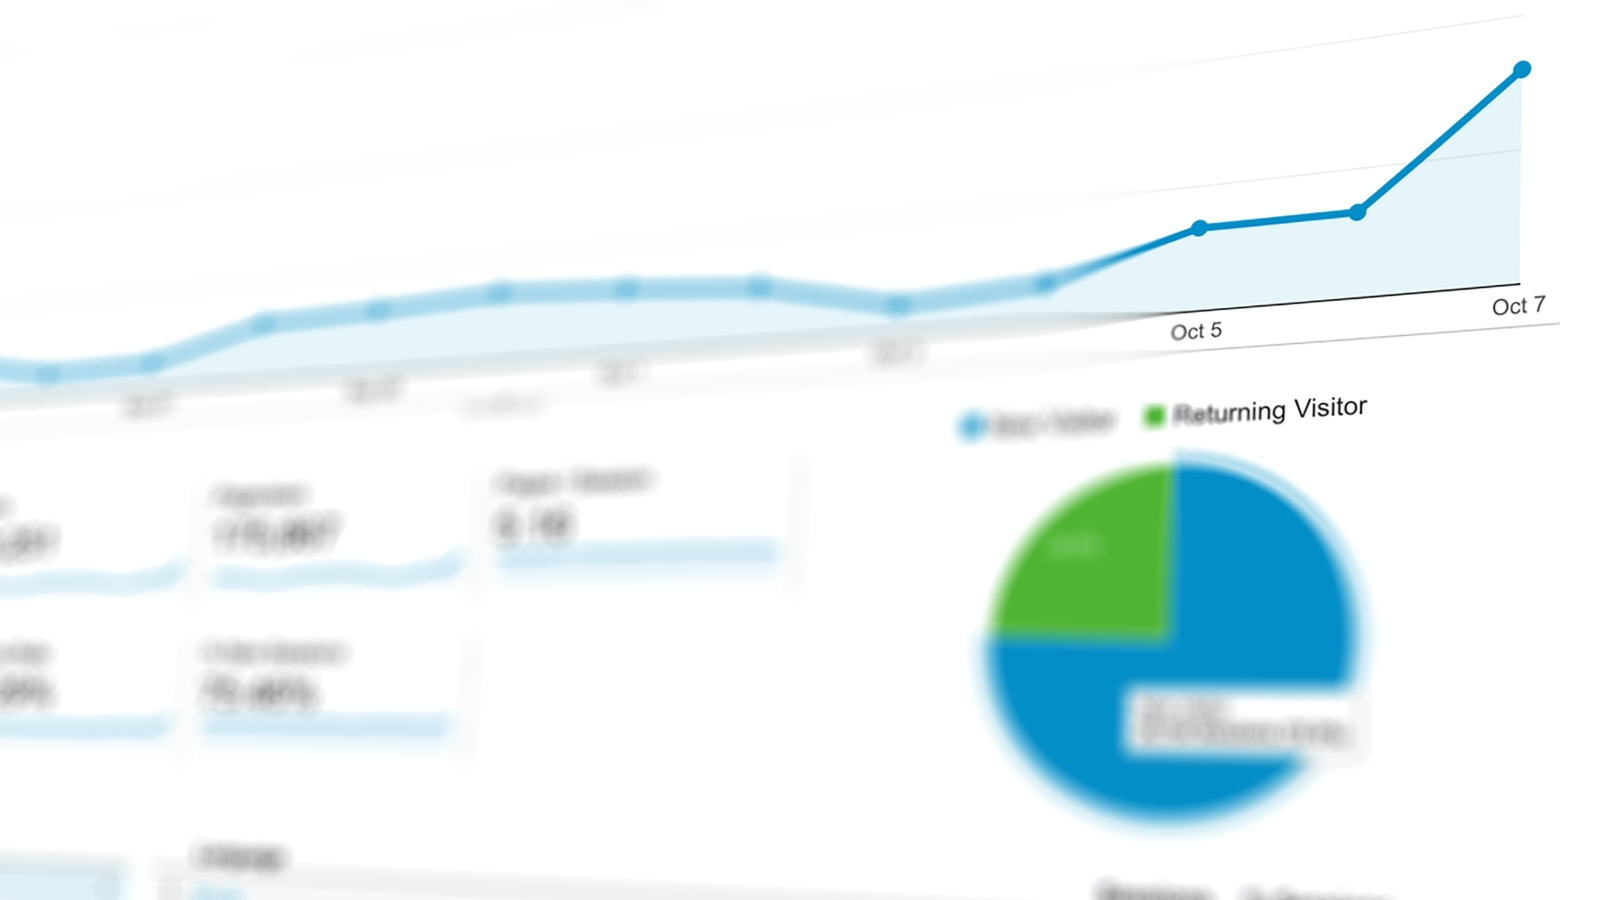 Data Analysis for Marketers